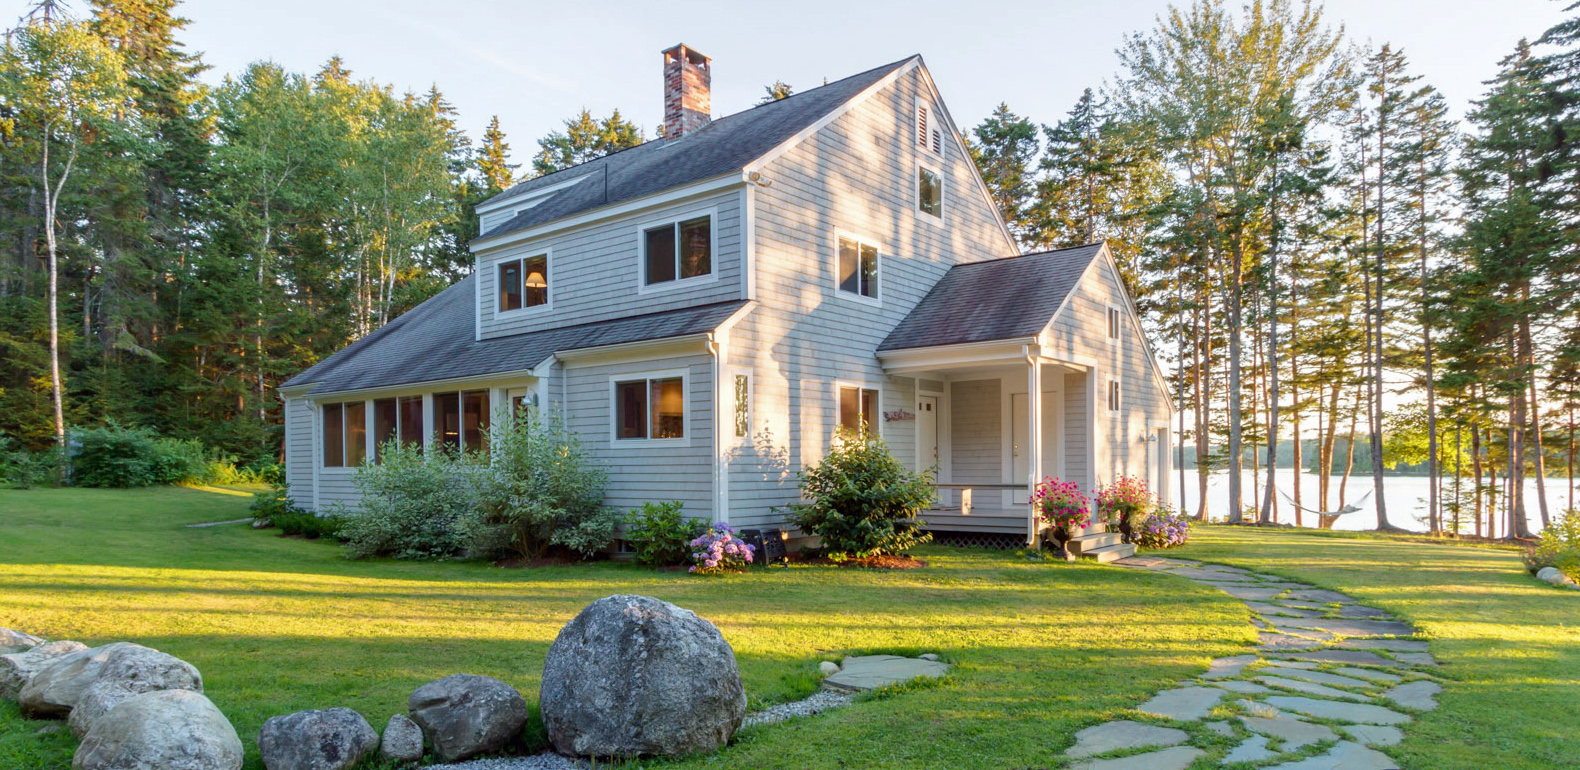 Single Family Home for Sale at Simplicity & Elegance Waldoboro, Maine 04572 United States